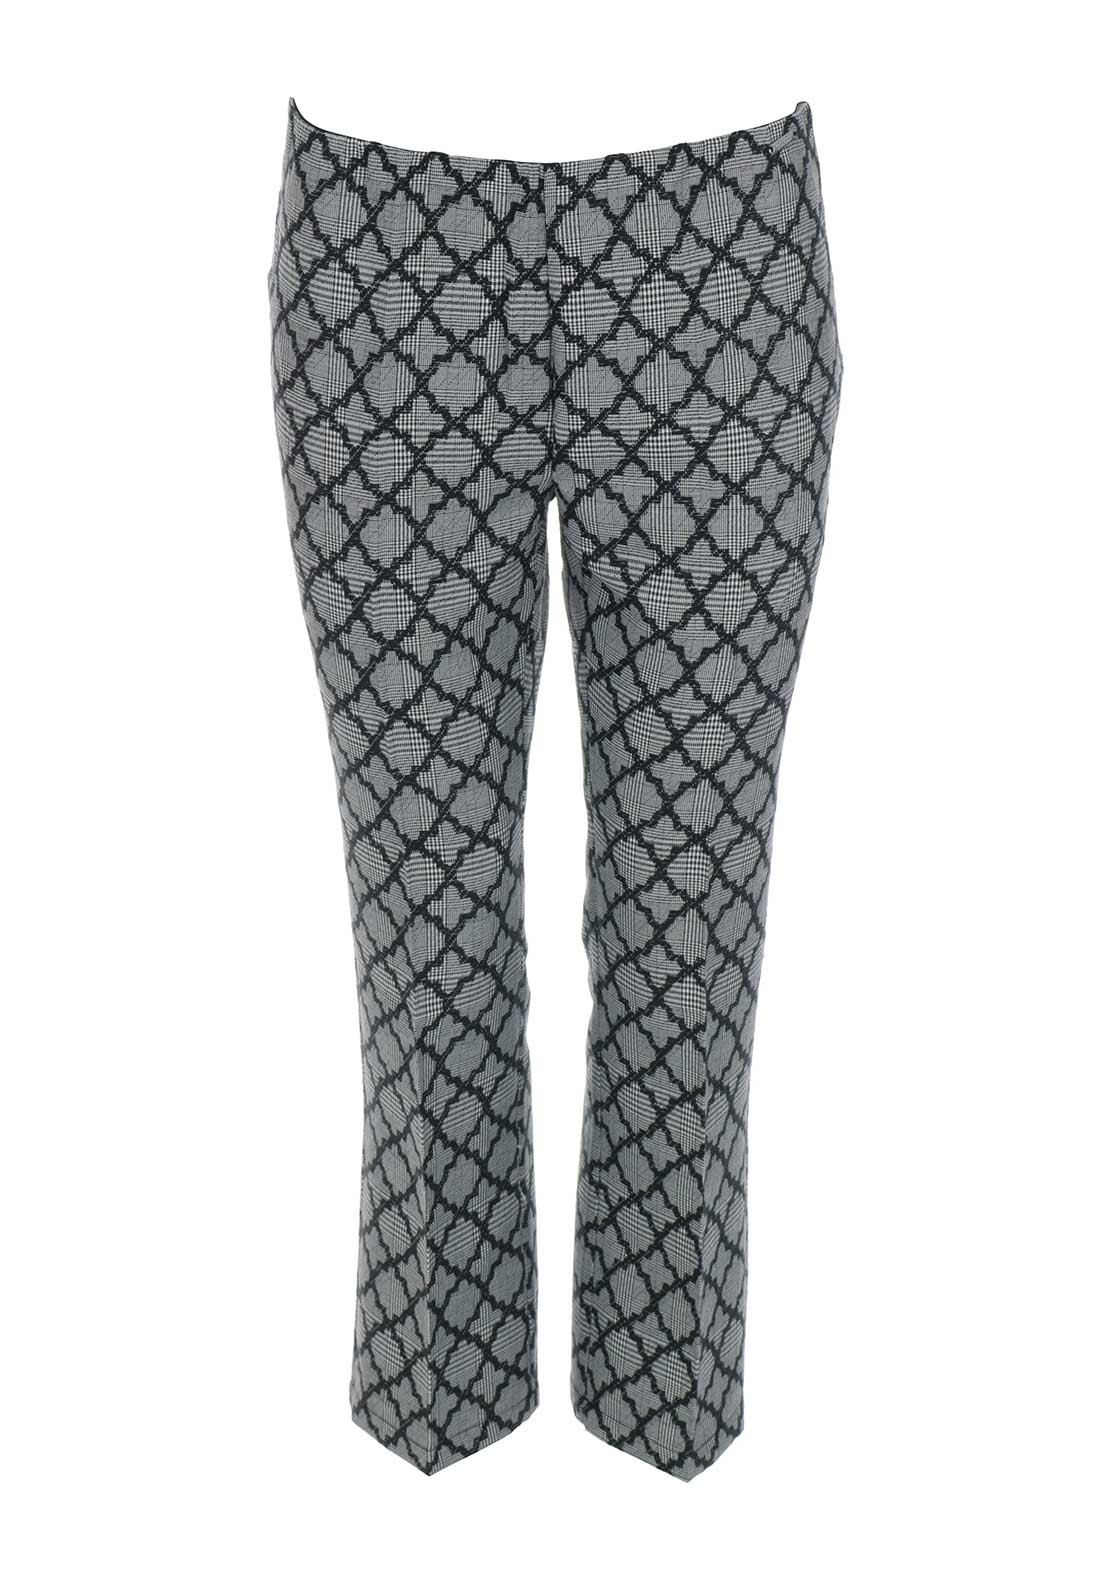 Guess Womens Houndstooth 7/8 Trousers, Grey